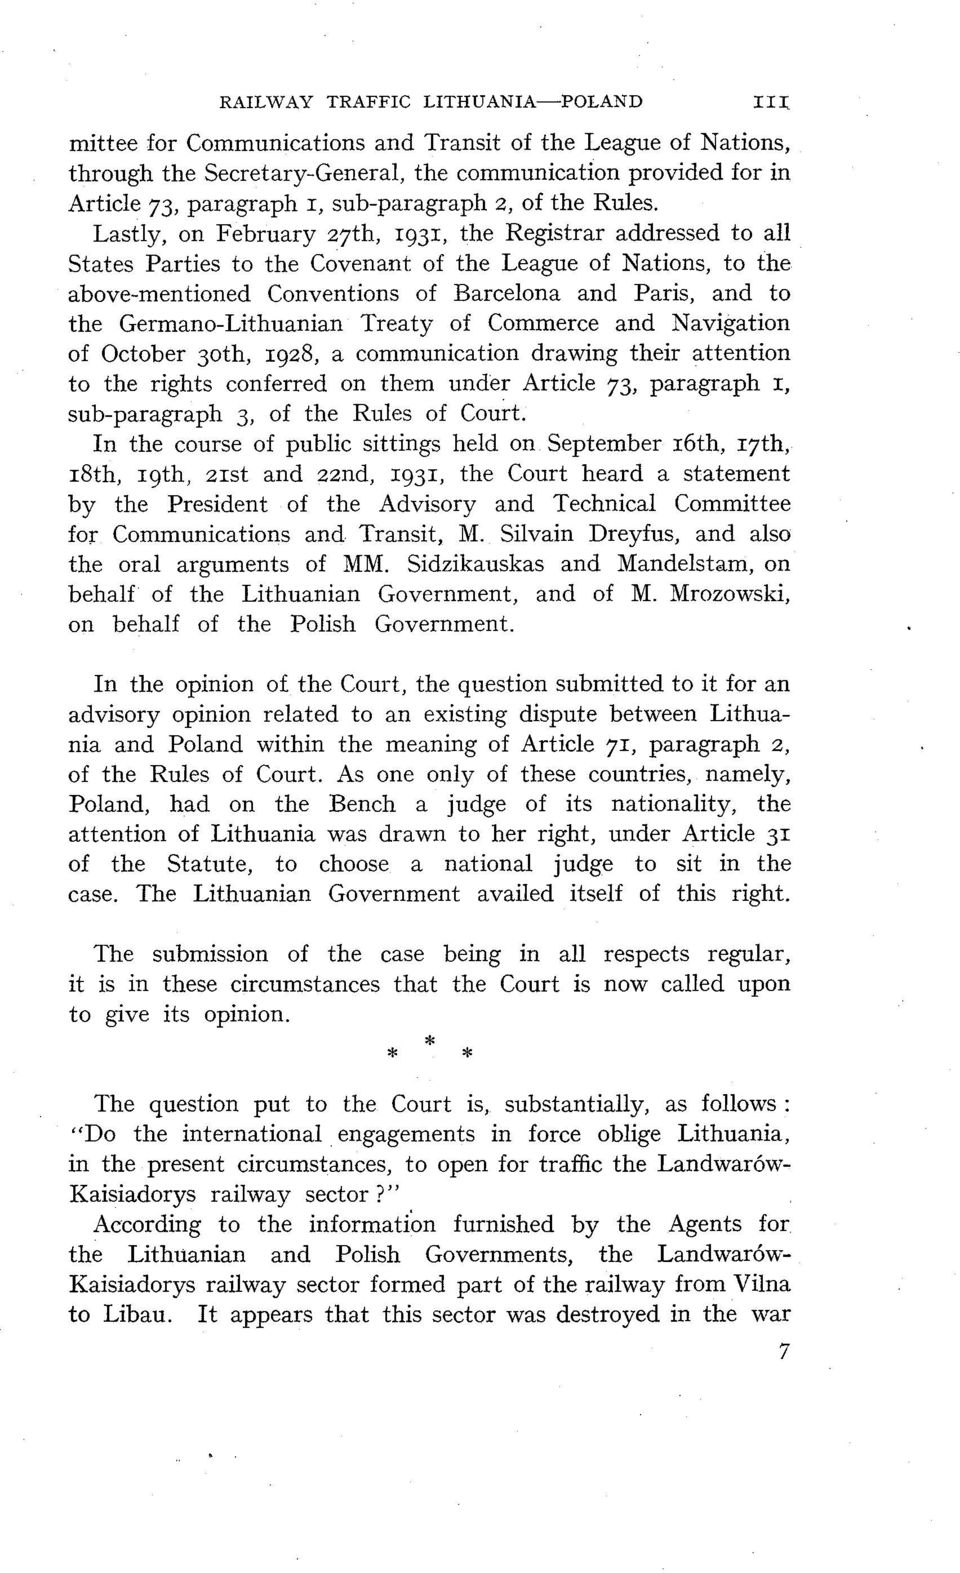 Lastly, on February 27th, 1931, the Registrar addressed to al1 States Parties to the Covenant of the League of Nations, to the above-mentioned Conventions of Barcelona and Paris, and to the